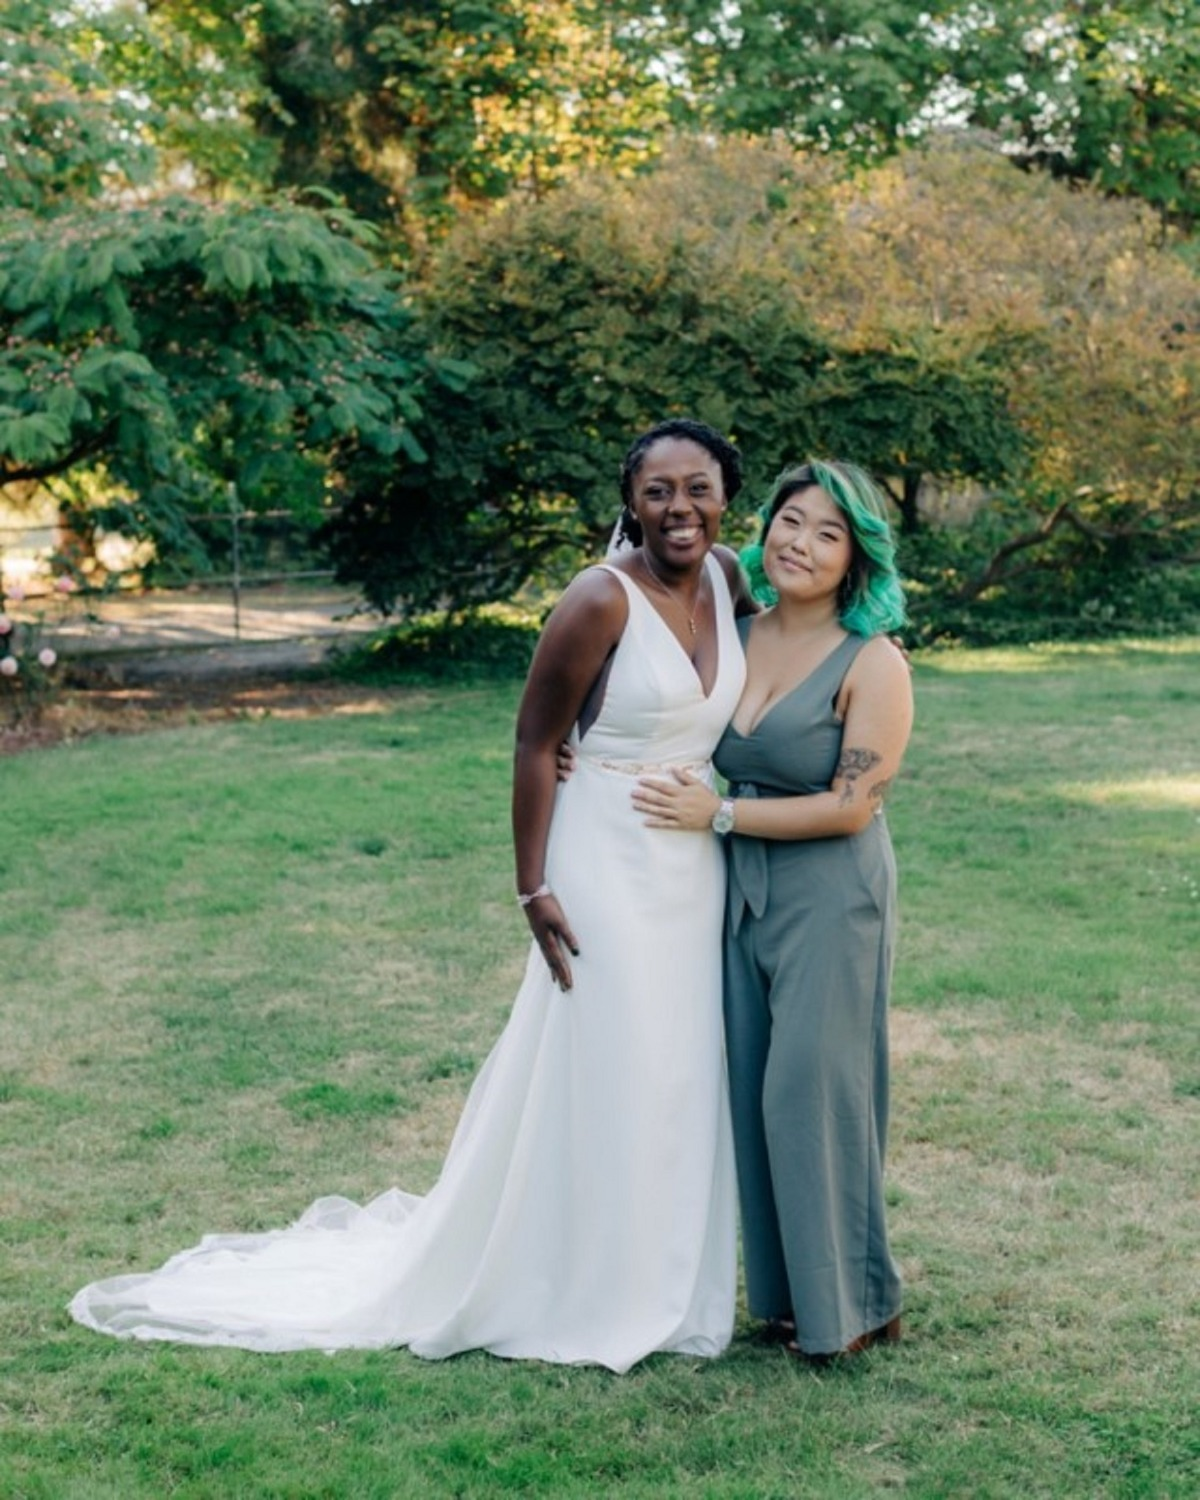 How To Have An Intimate Backyard Wedding Despite COVID-19